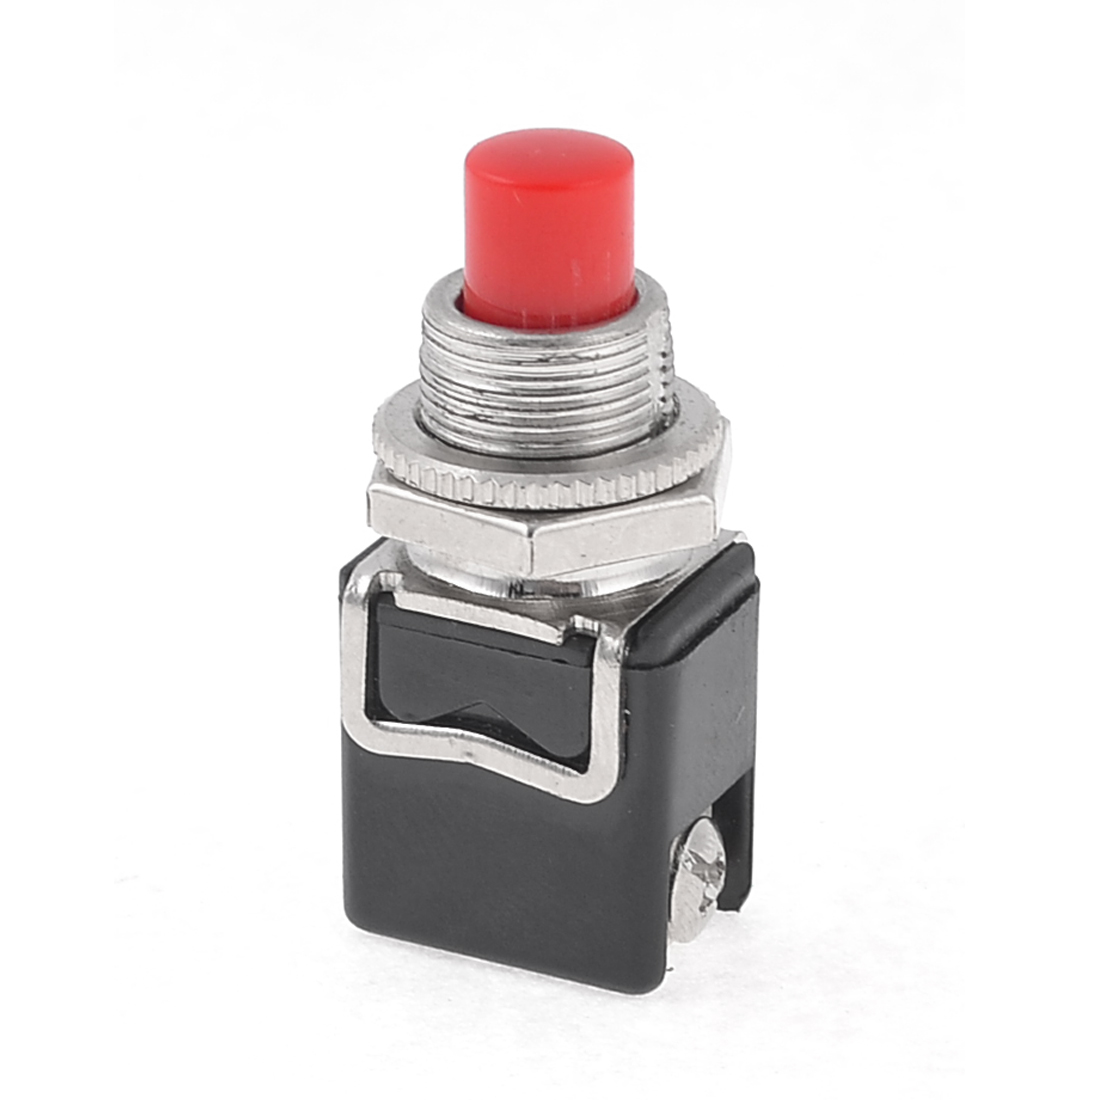 Vehicle Car 7mm Dia Red Round Cap Momentary Press Push Button Switch 12V